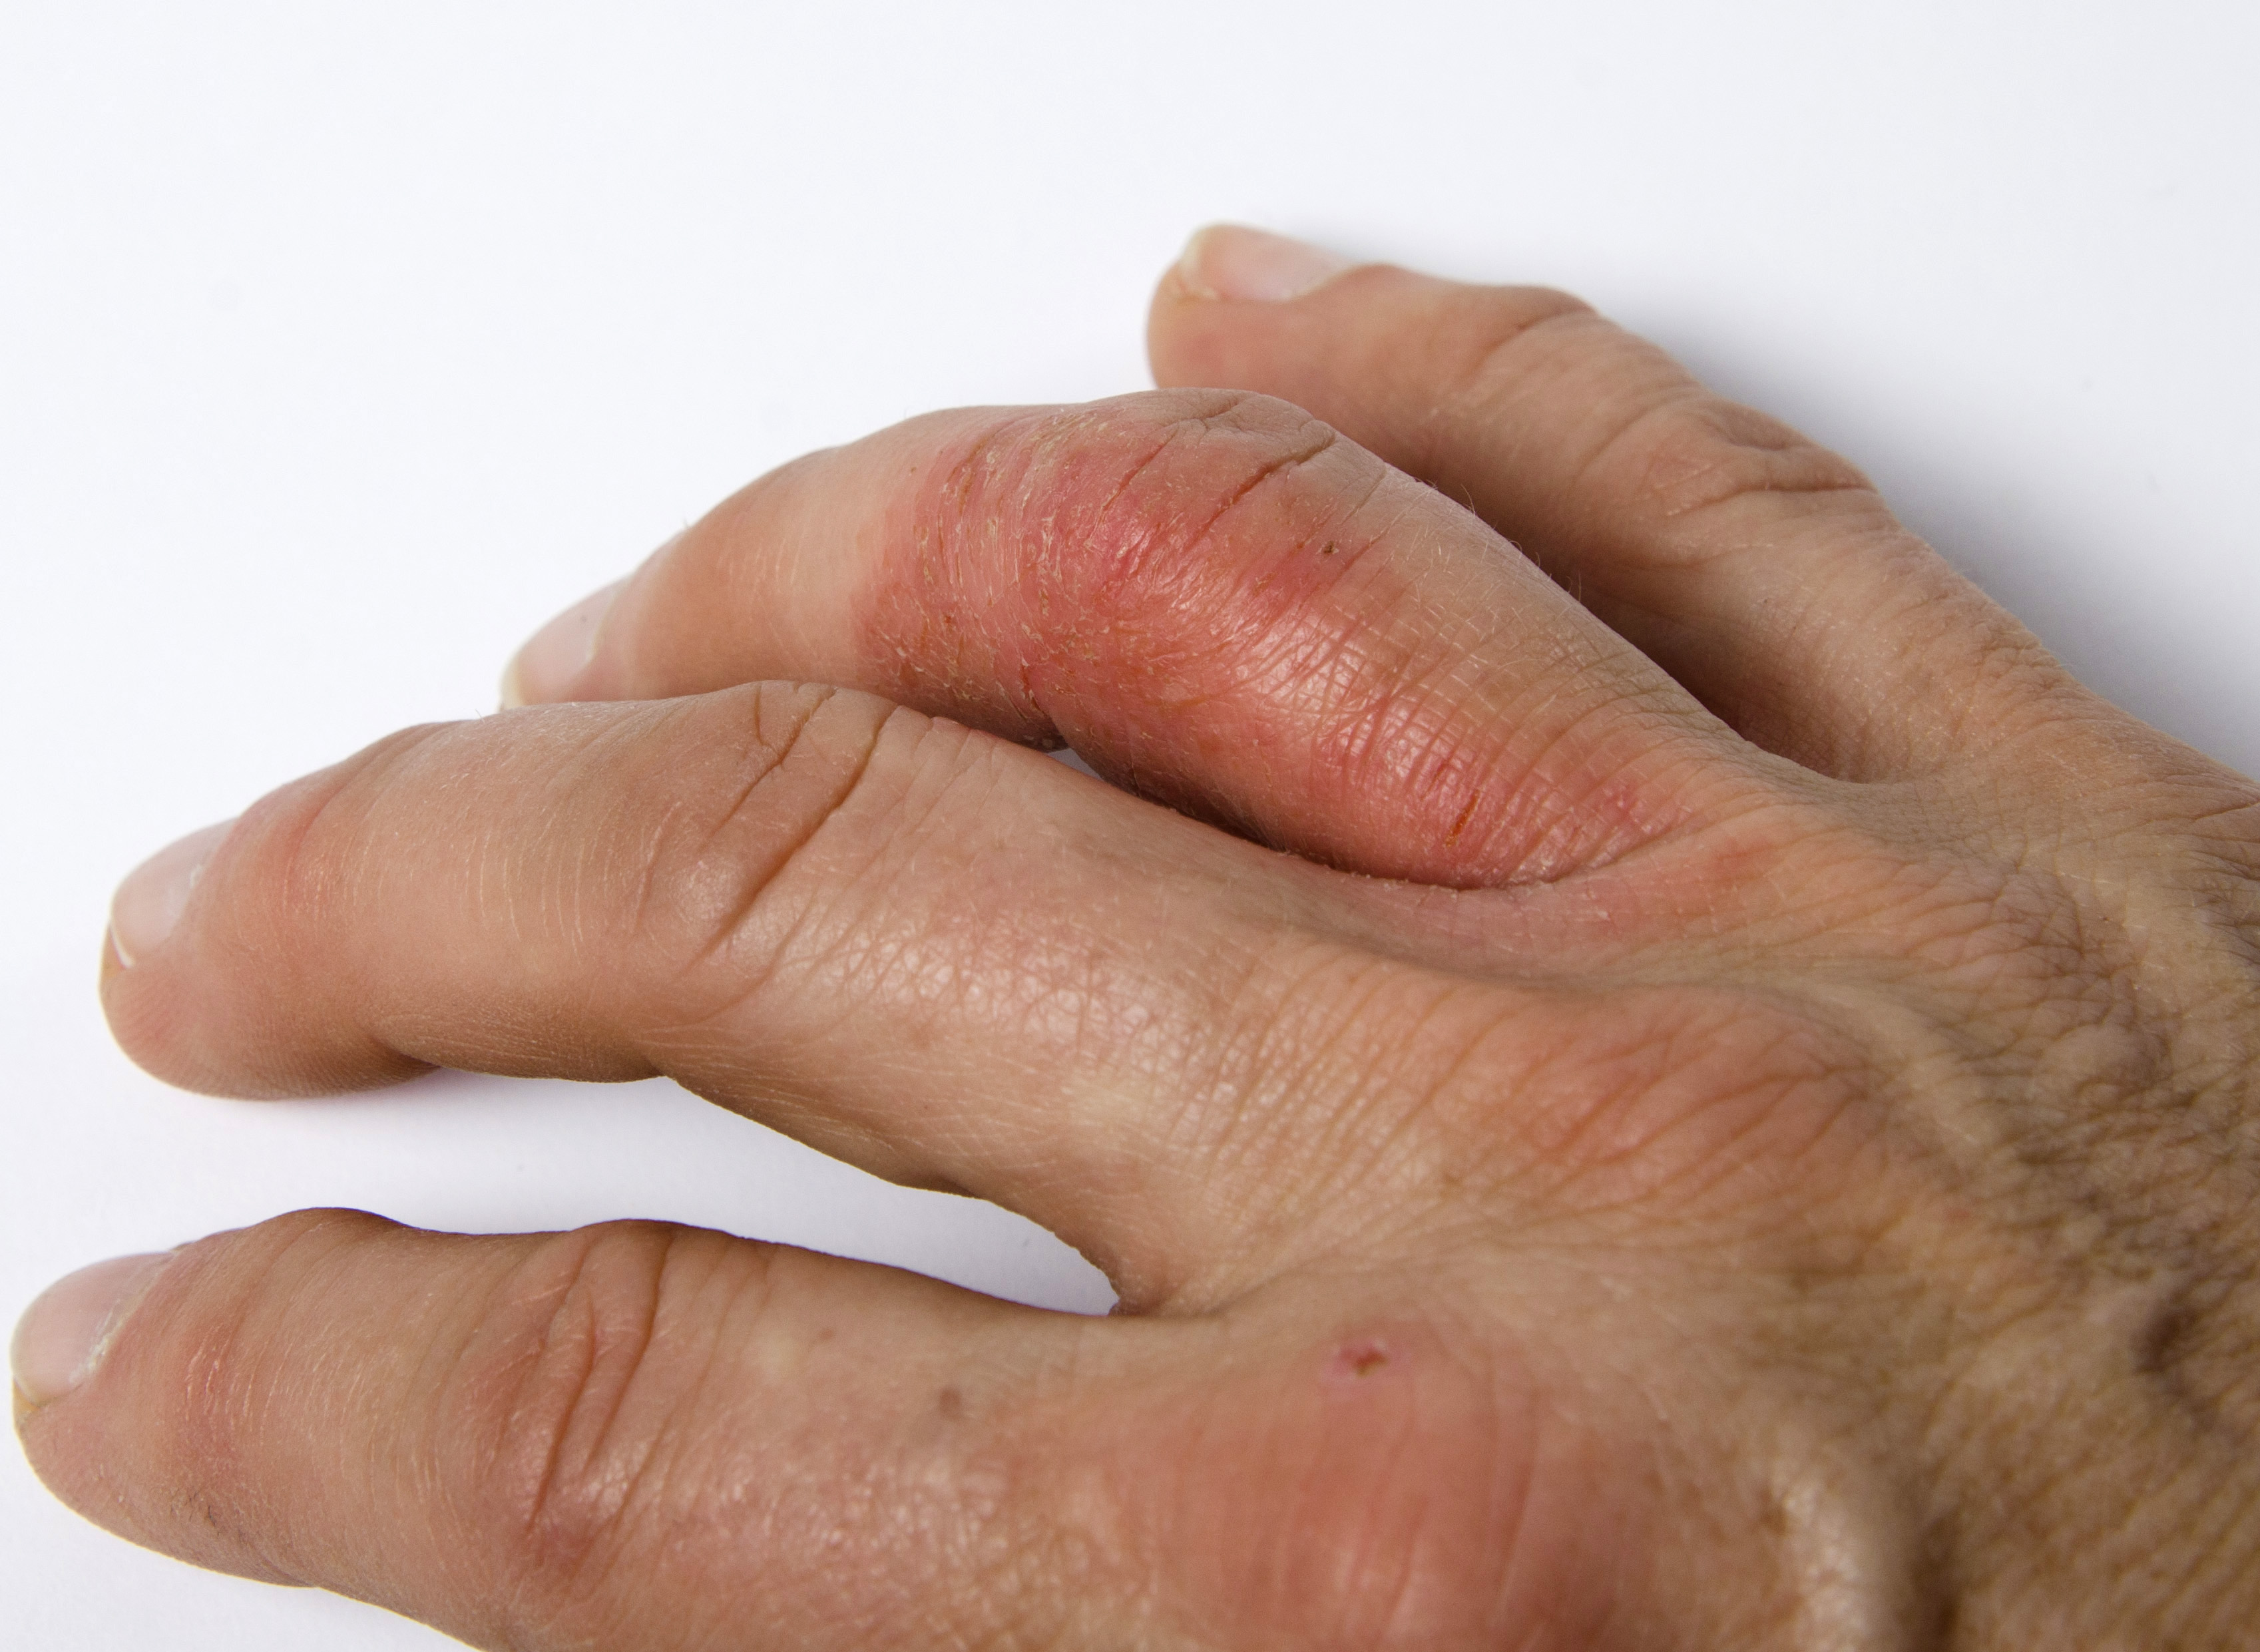 Trending News Today: Janssen Submits sBLA for Guselkumab in Psoriatic Arthritis